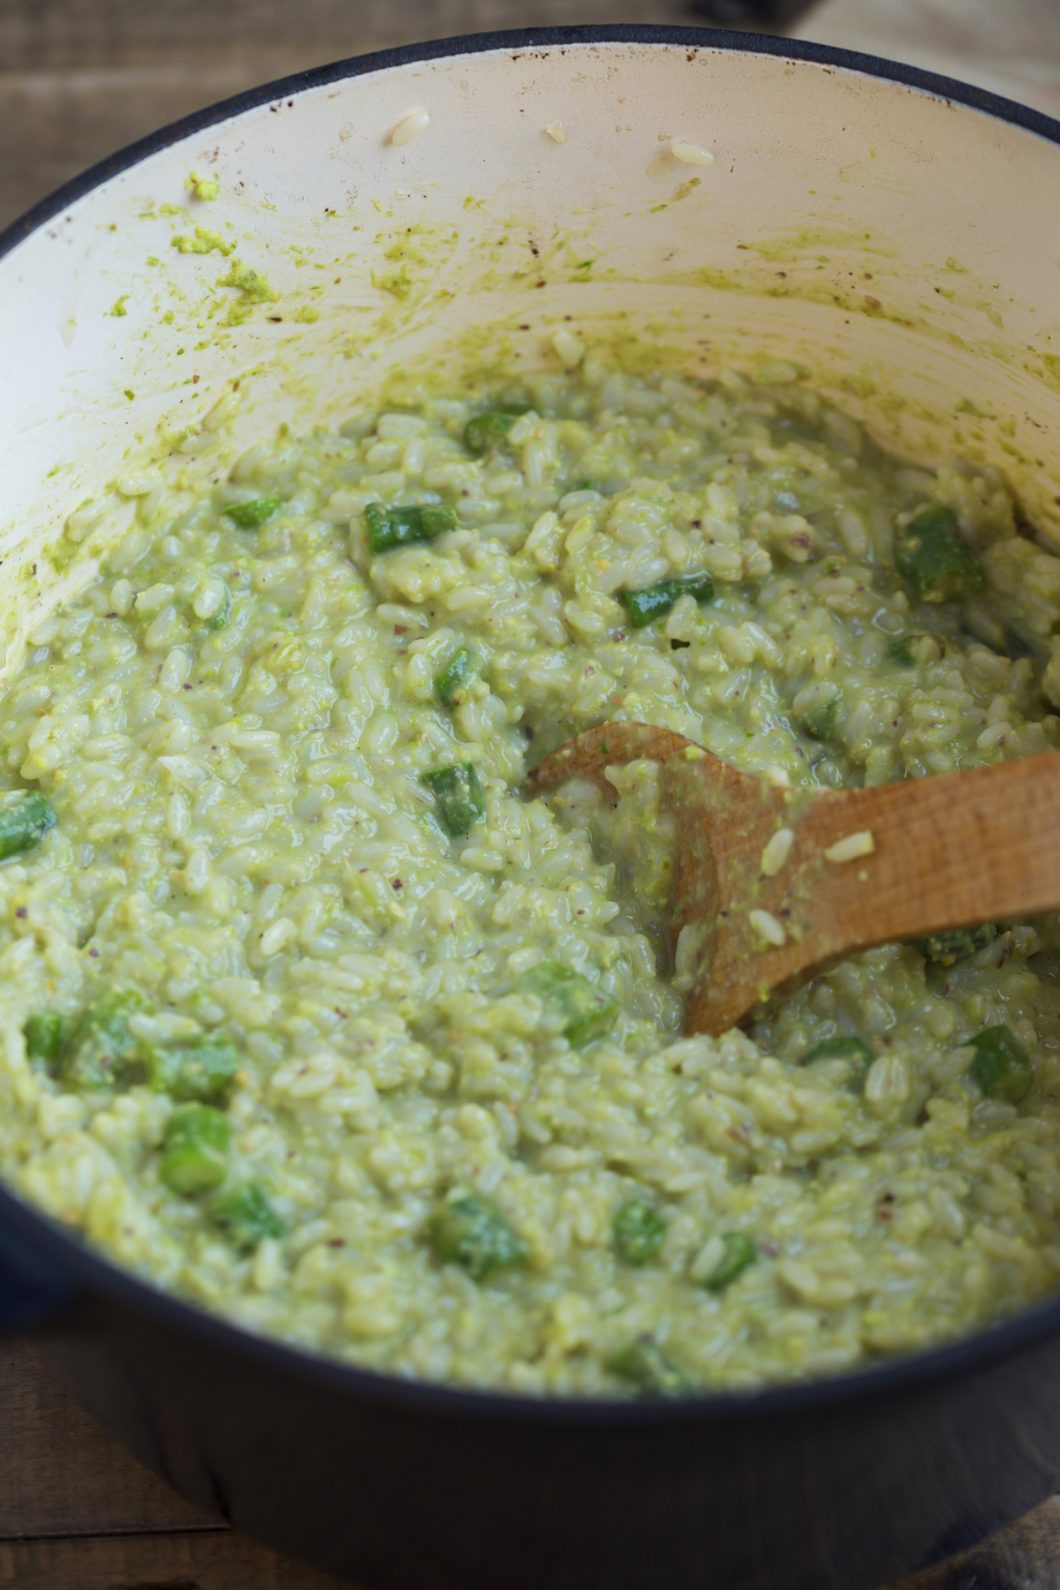 Asparagus risotto in a Dutch oven.